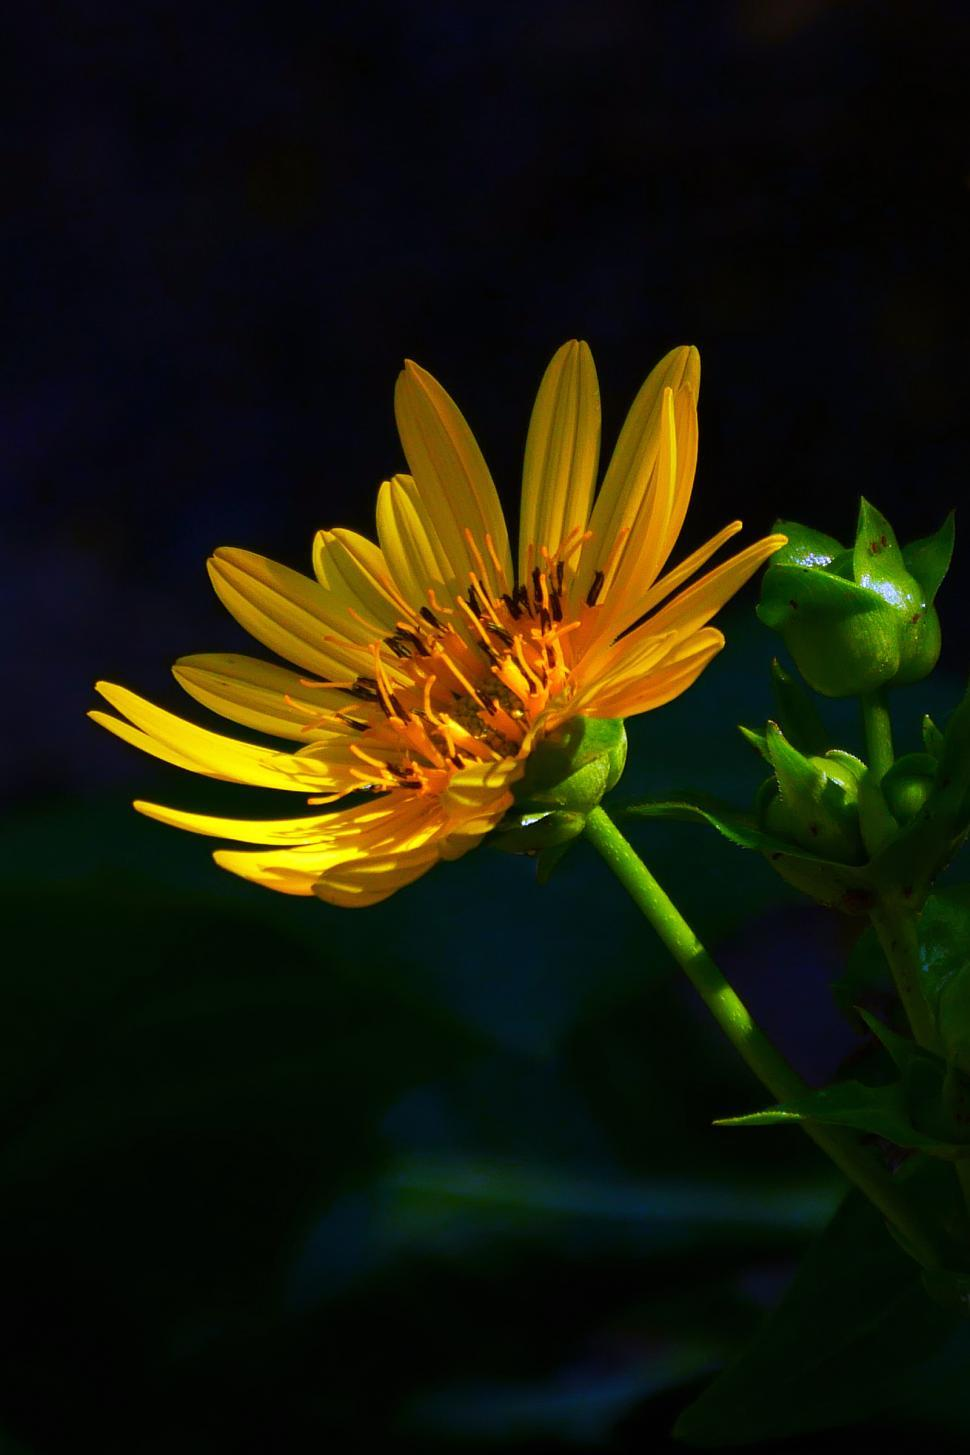 Download Free Stock HD Photo of Golden Aster Flower, Blooming in Shade Online